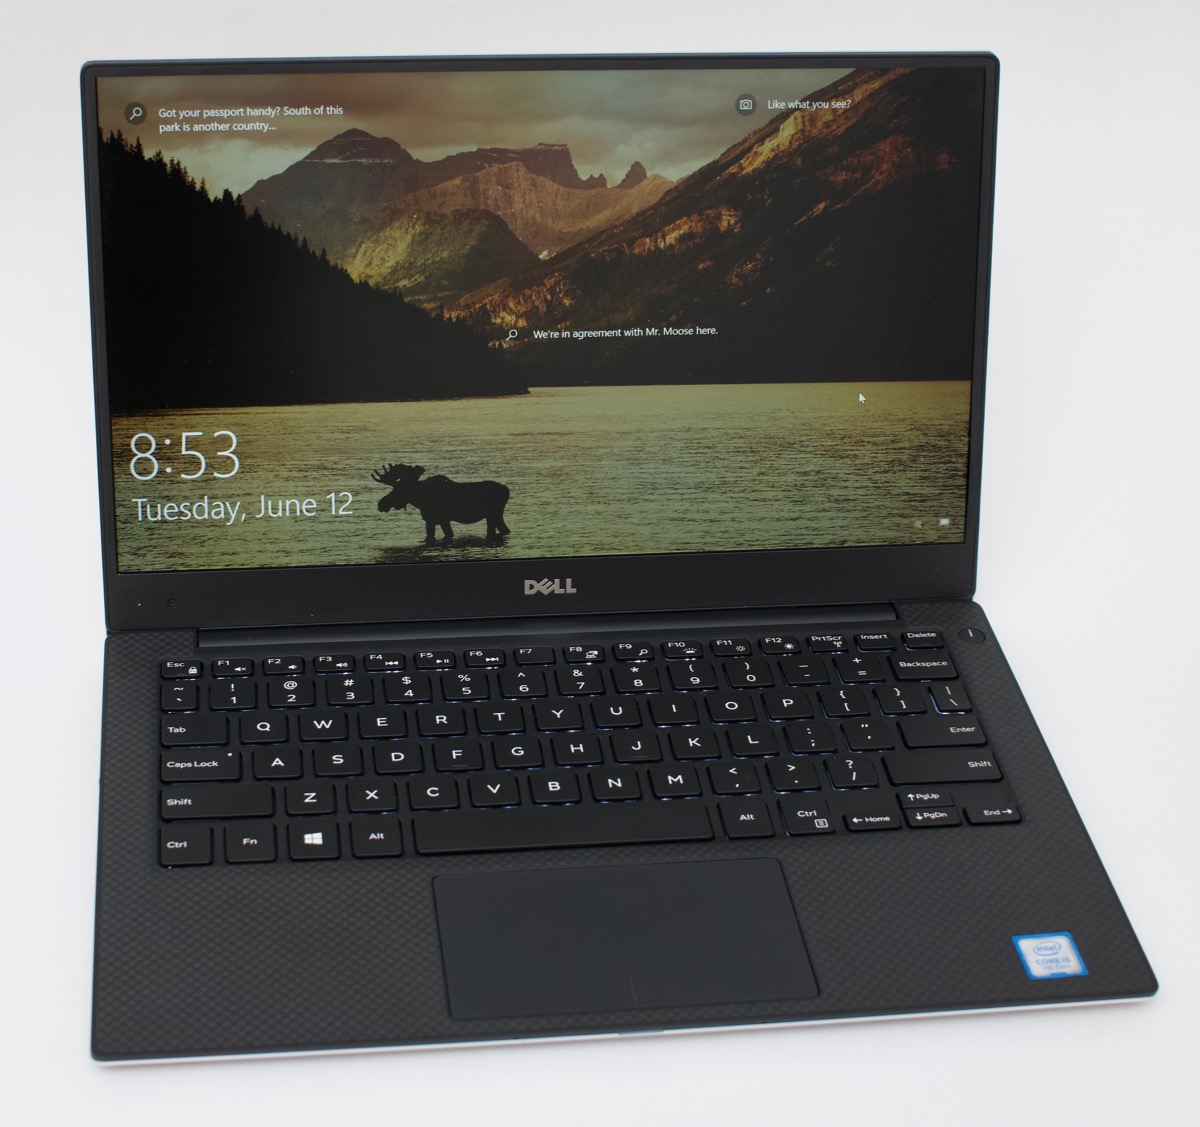 Dell Xps 13 9360 Review From A Lifelong Mac User Jeff Geerling